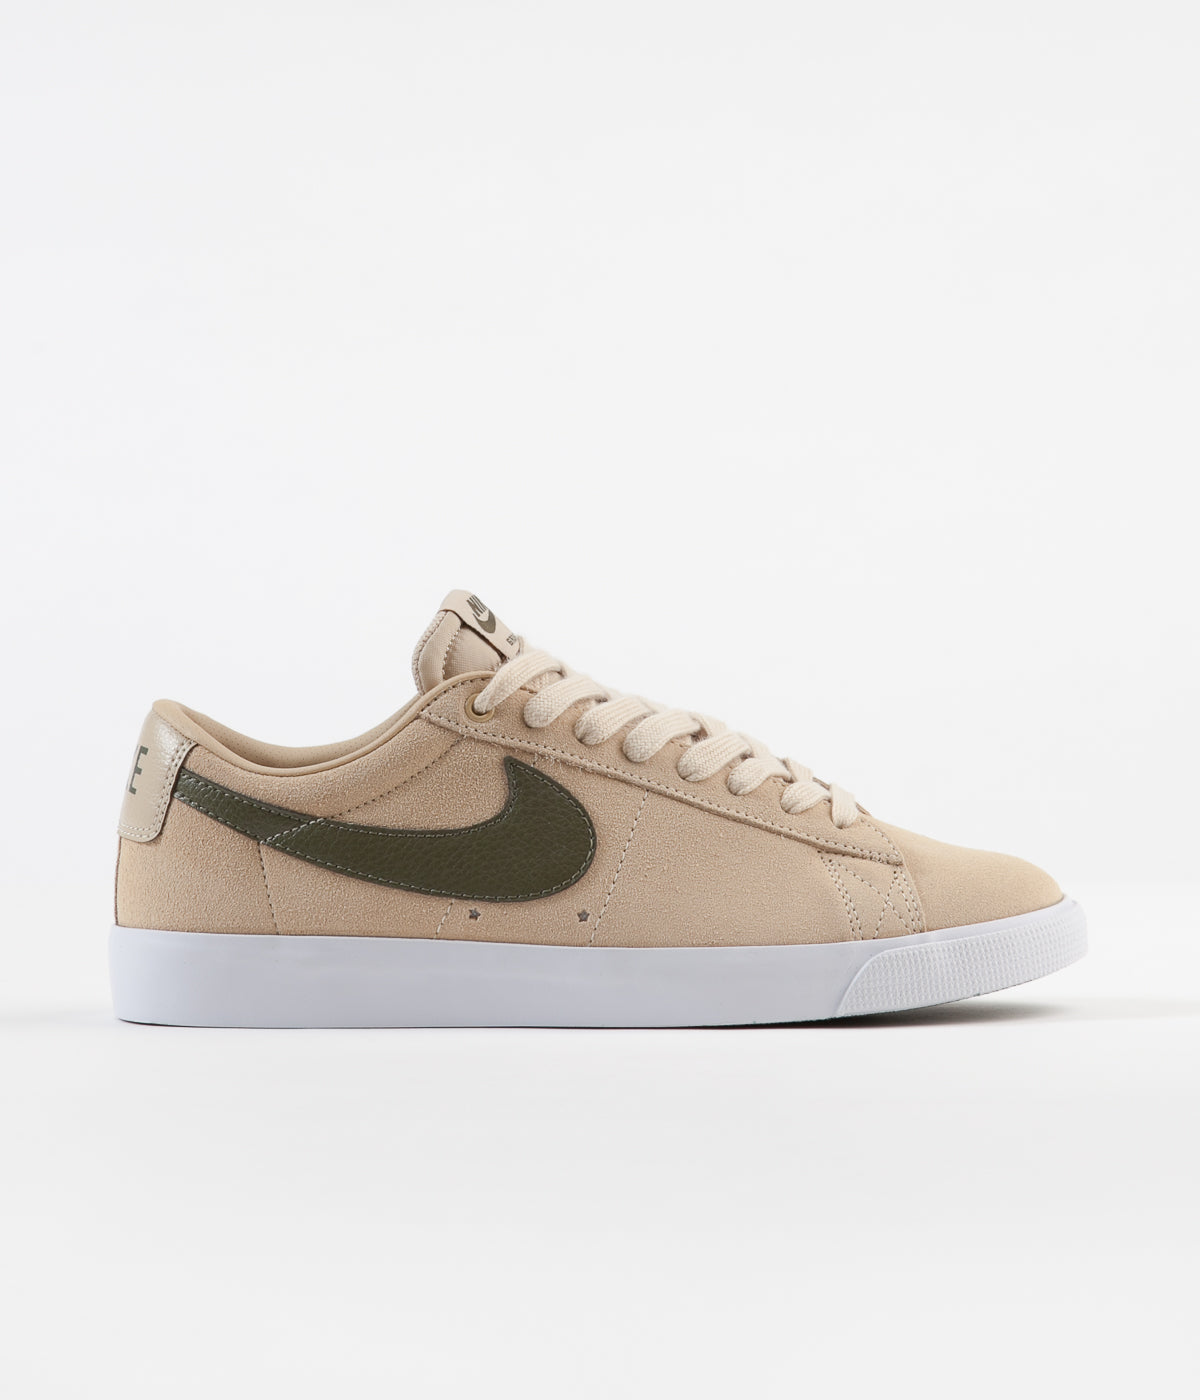 best authentic 31713 17329 Nike SB Blazer Low GT Shoes - Desert Ore / Medium Olive ...